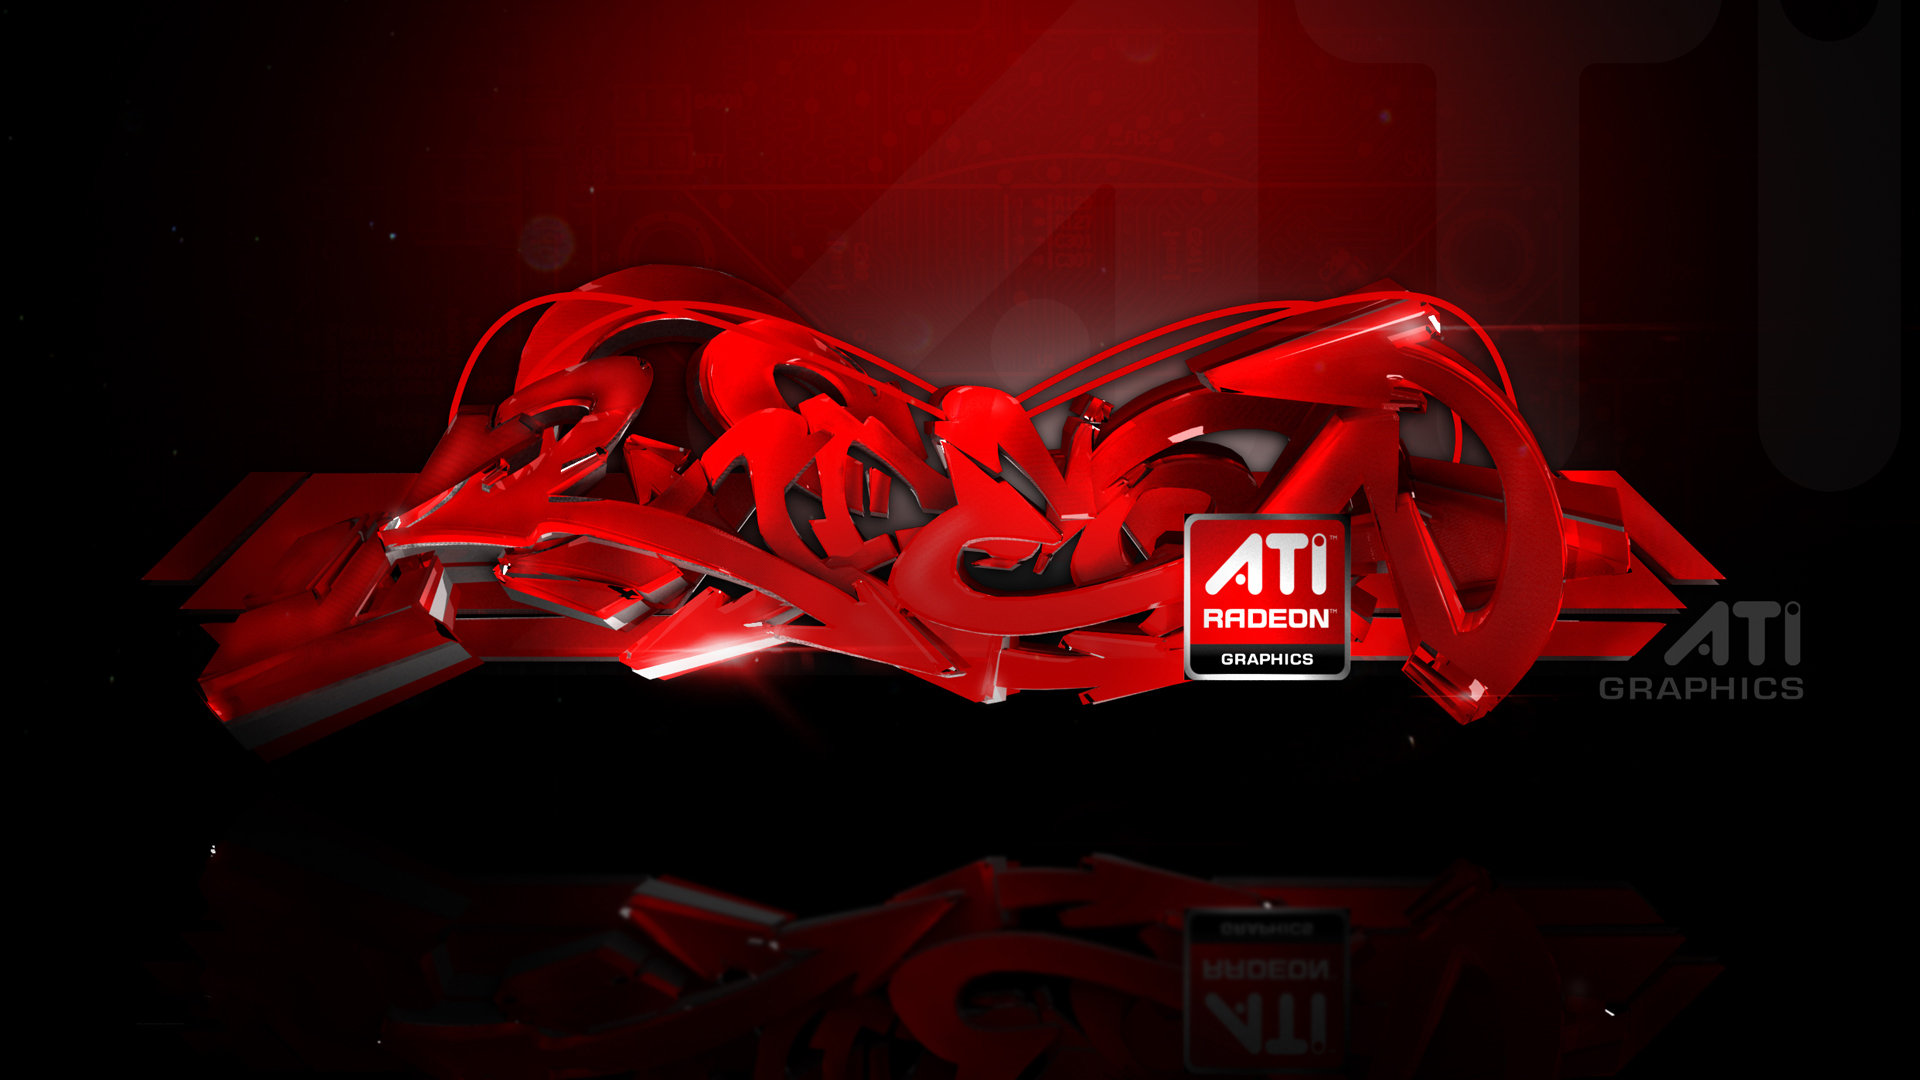 High resolution ATI full hd wallpaper ID:45048 for desktop